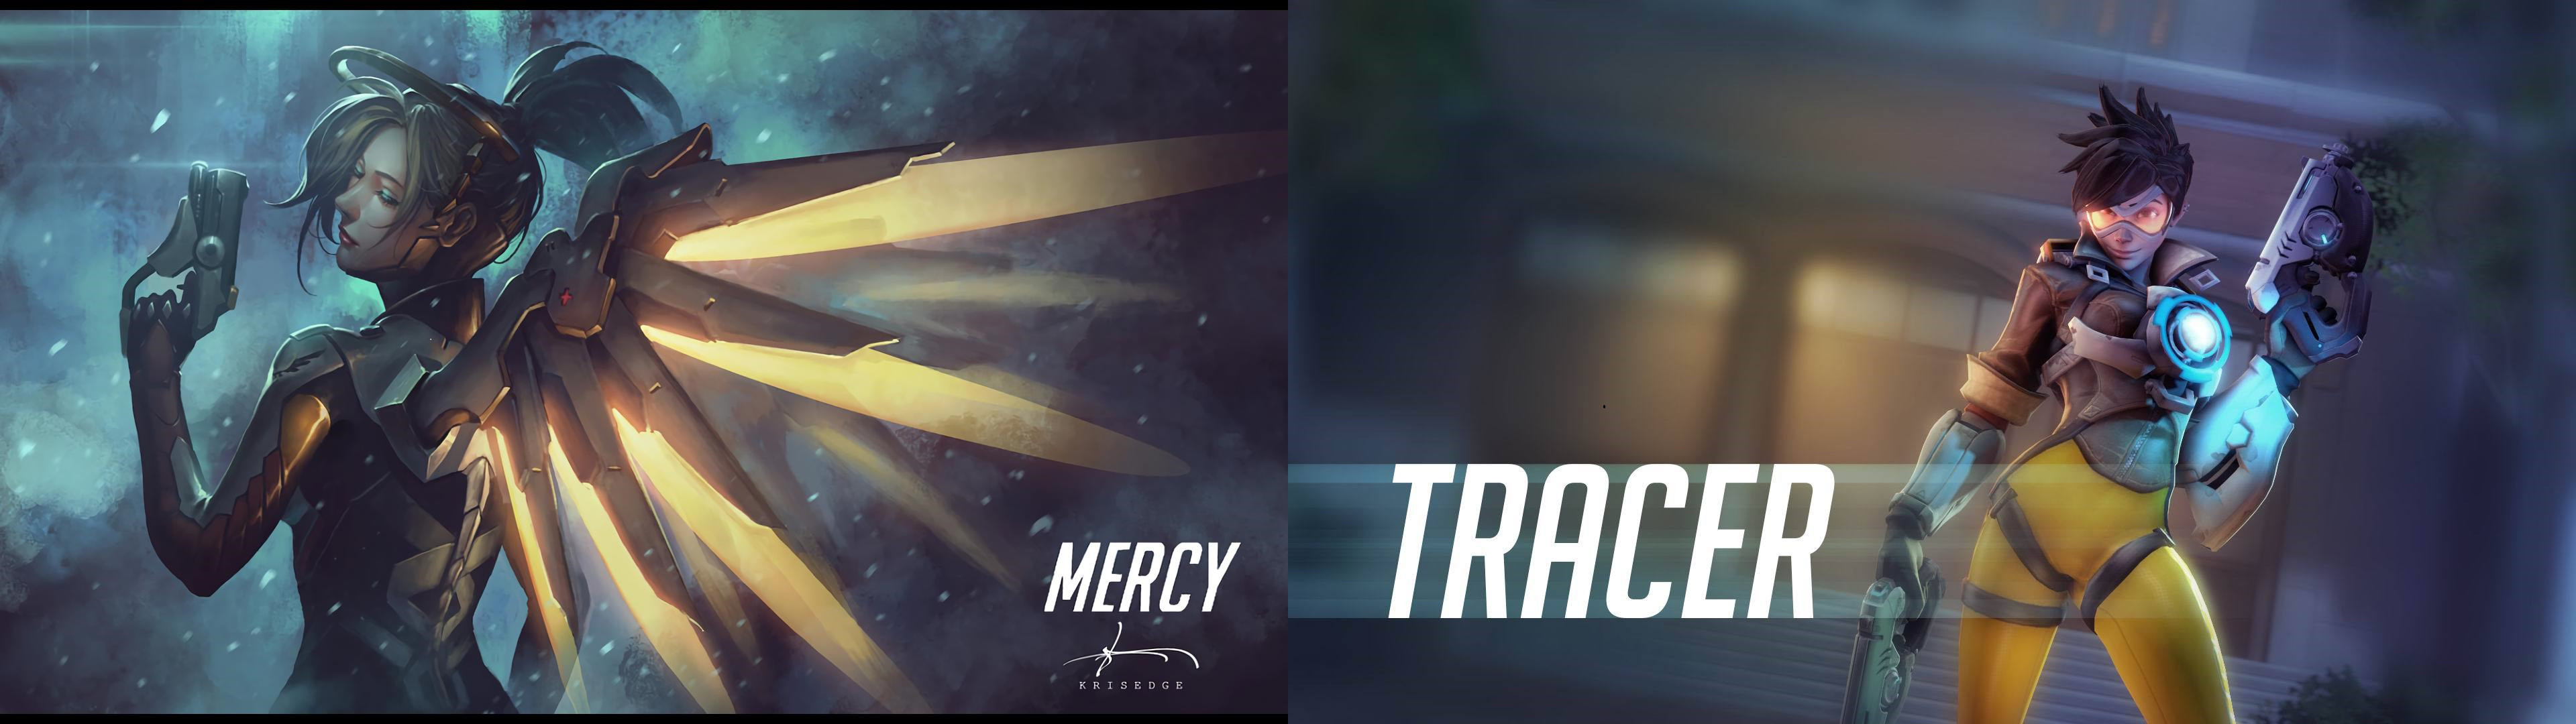 3840x1080 Mercyracer Dual Monitor Background by IDarkStalker Mercyracer Dual Monitor  Background by IDarkStalker